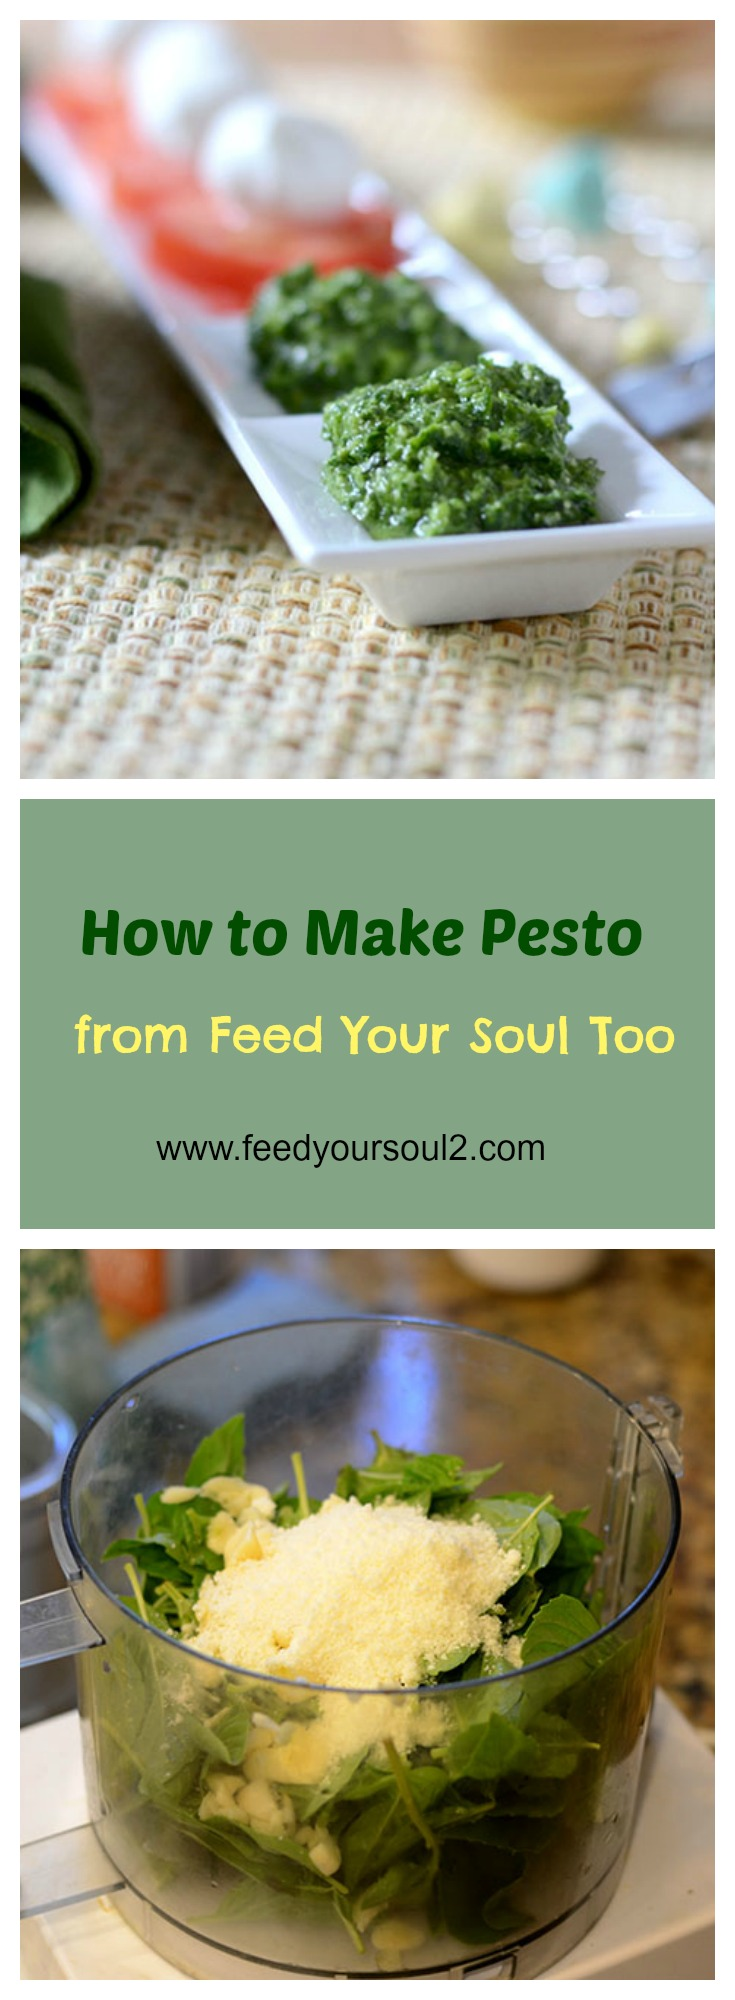 How to Make Pesto #pesto #lvegetarian #howto | feedyoursoul2.com